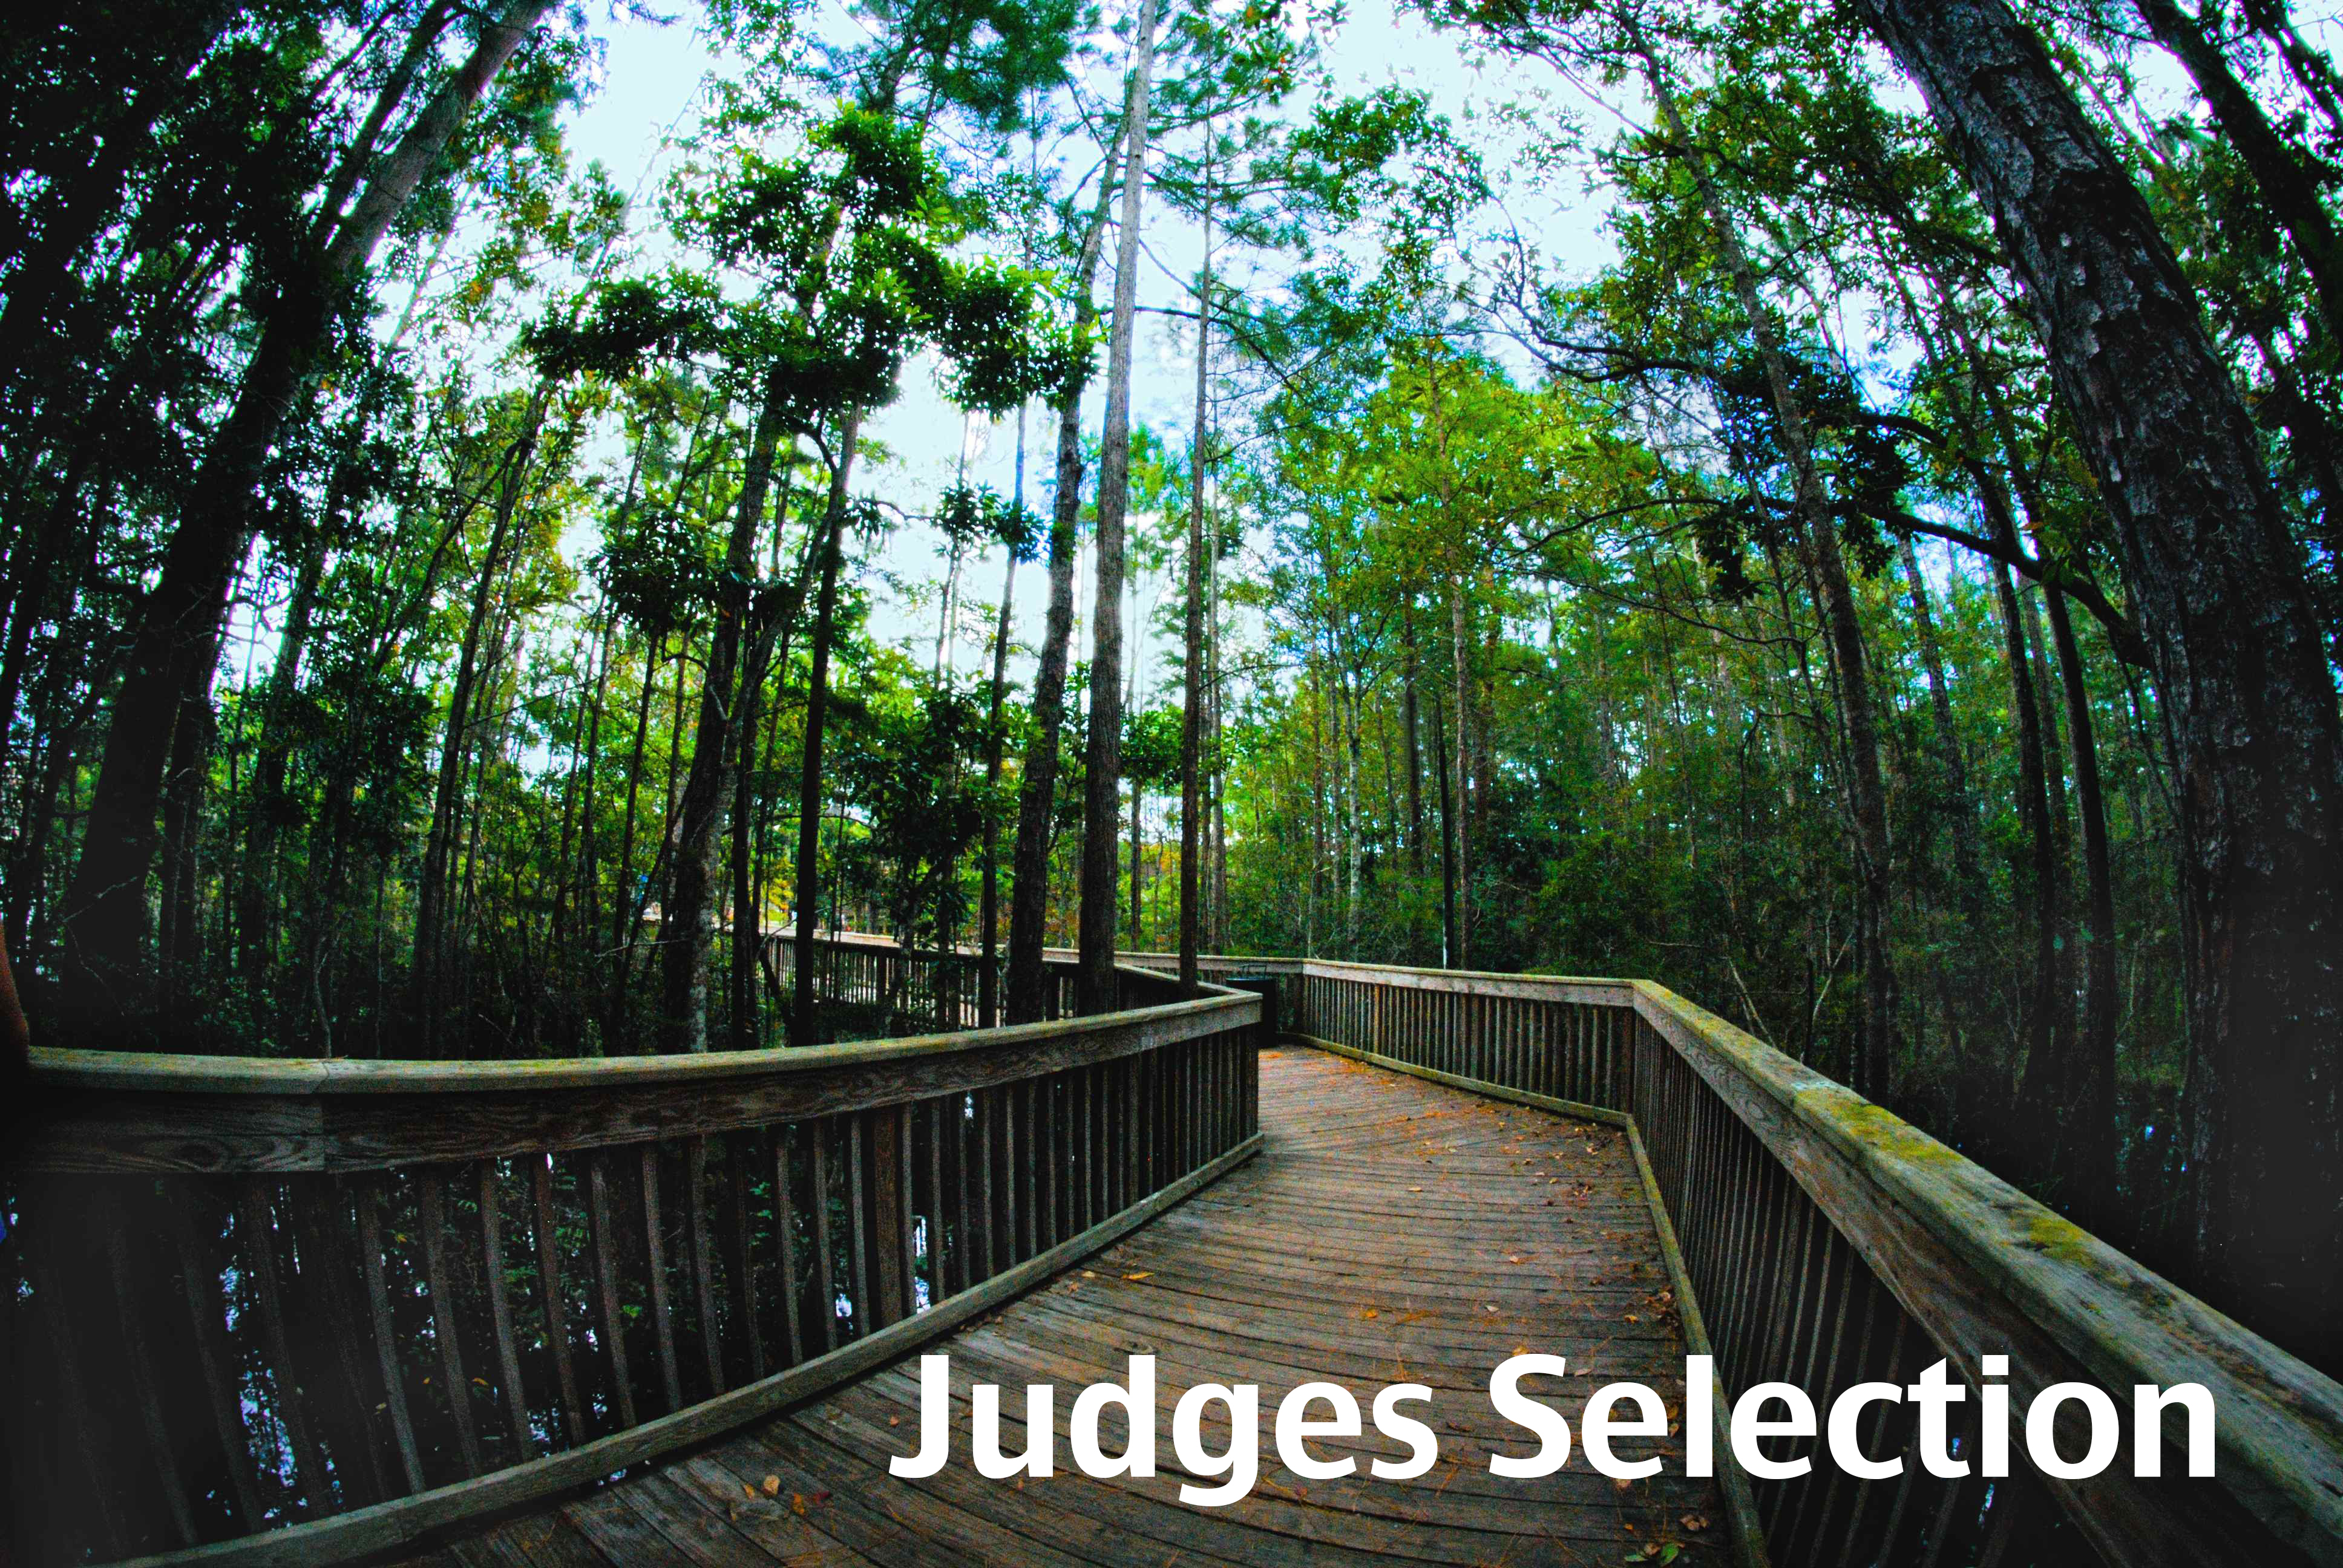 Judge's selection photo, boardwalk in housing